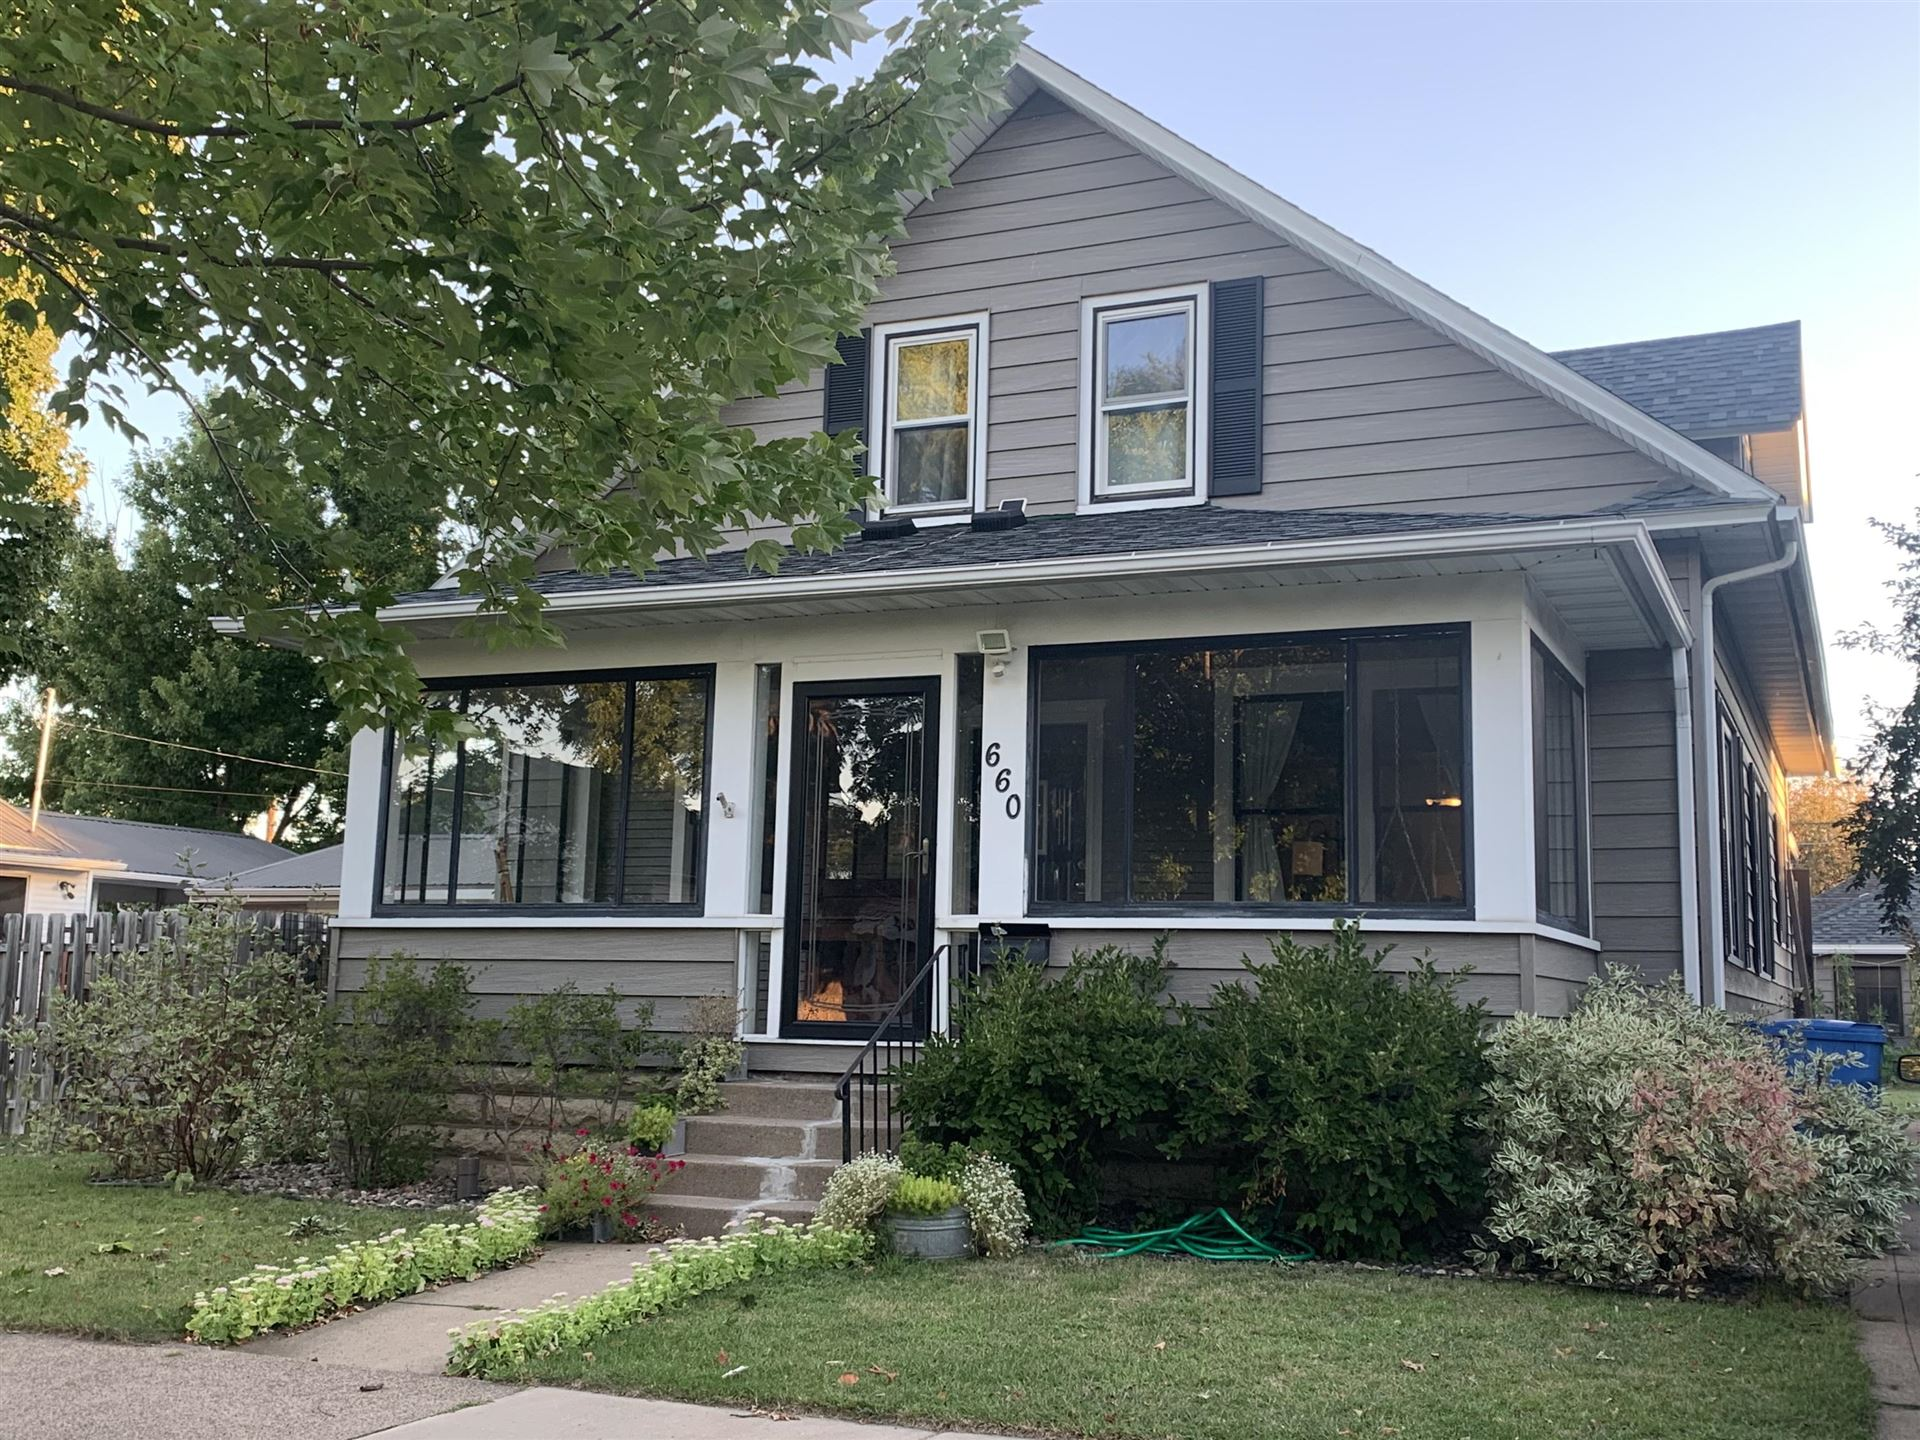 660 7th St E, Winona, MN 55987 - MLS#: 1708710